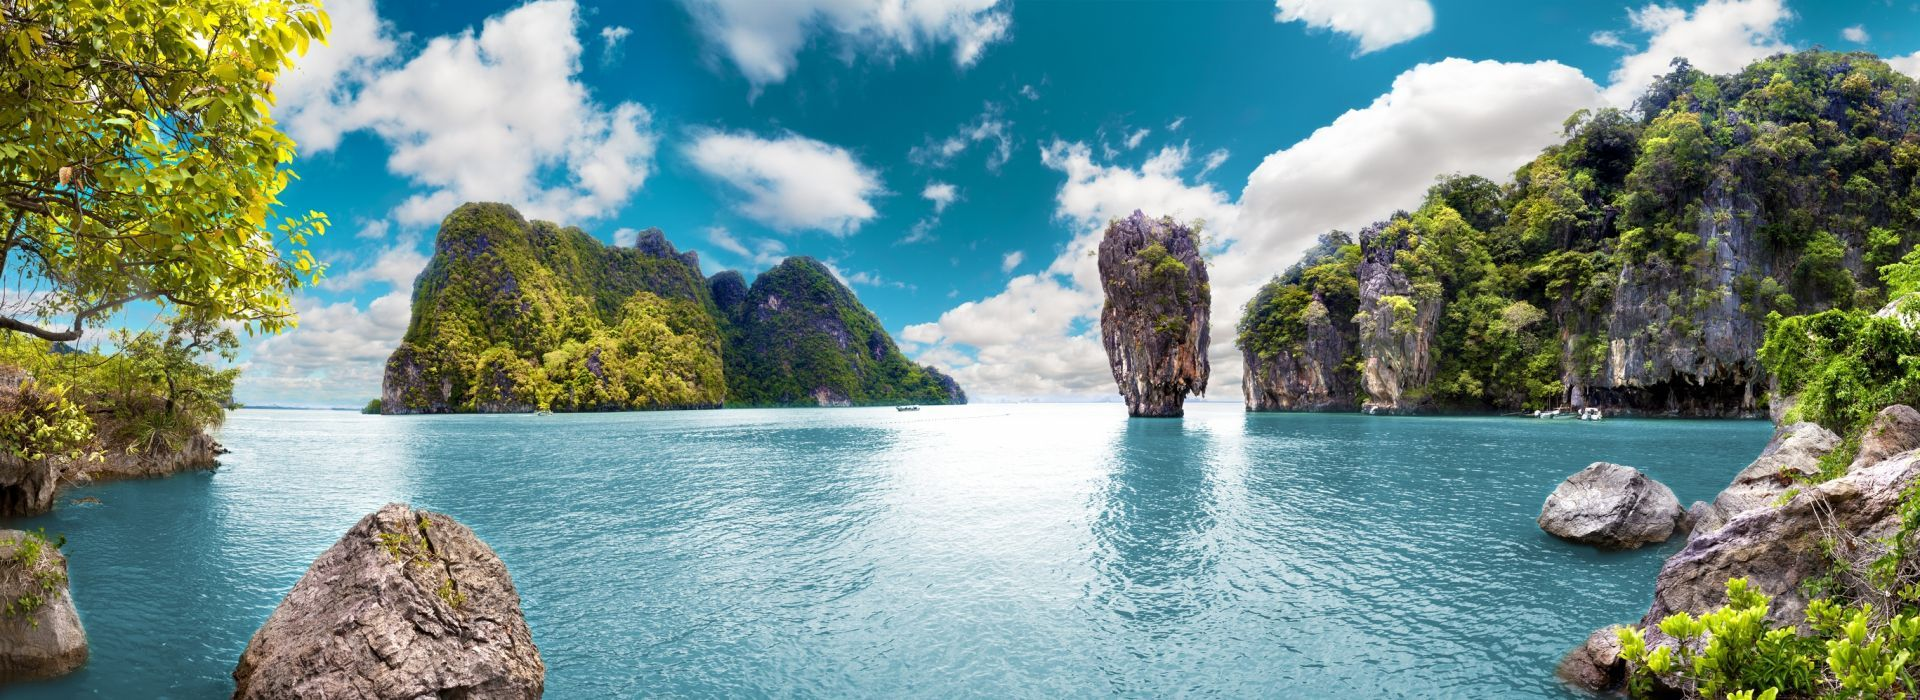 Sailing, yachting and motor boating Tours in Krabi